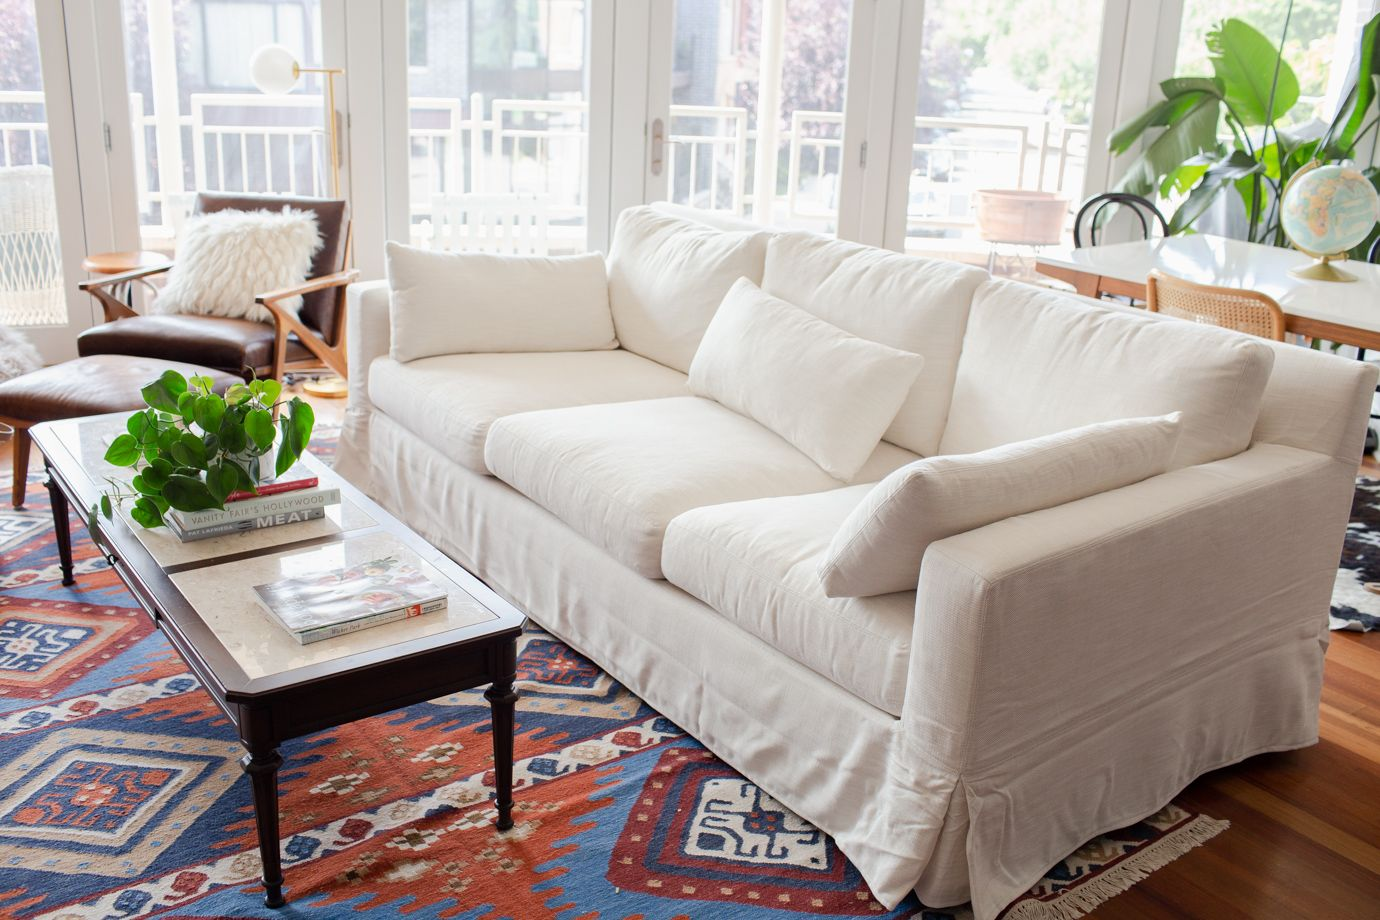 How To Choose The Perfect Sofa Pottery Barn York Sofa Review Slipcovered Sofa Living Room Pottery Barn Living Room Pottery Barn Sofa